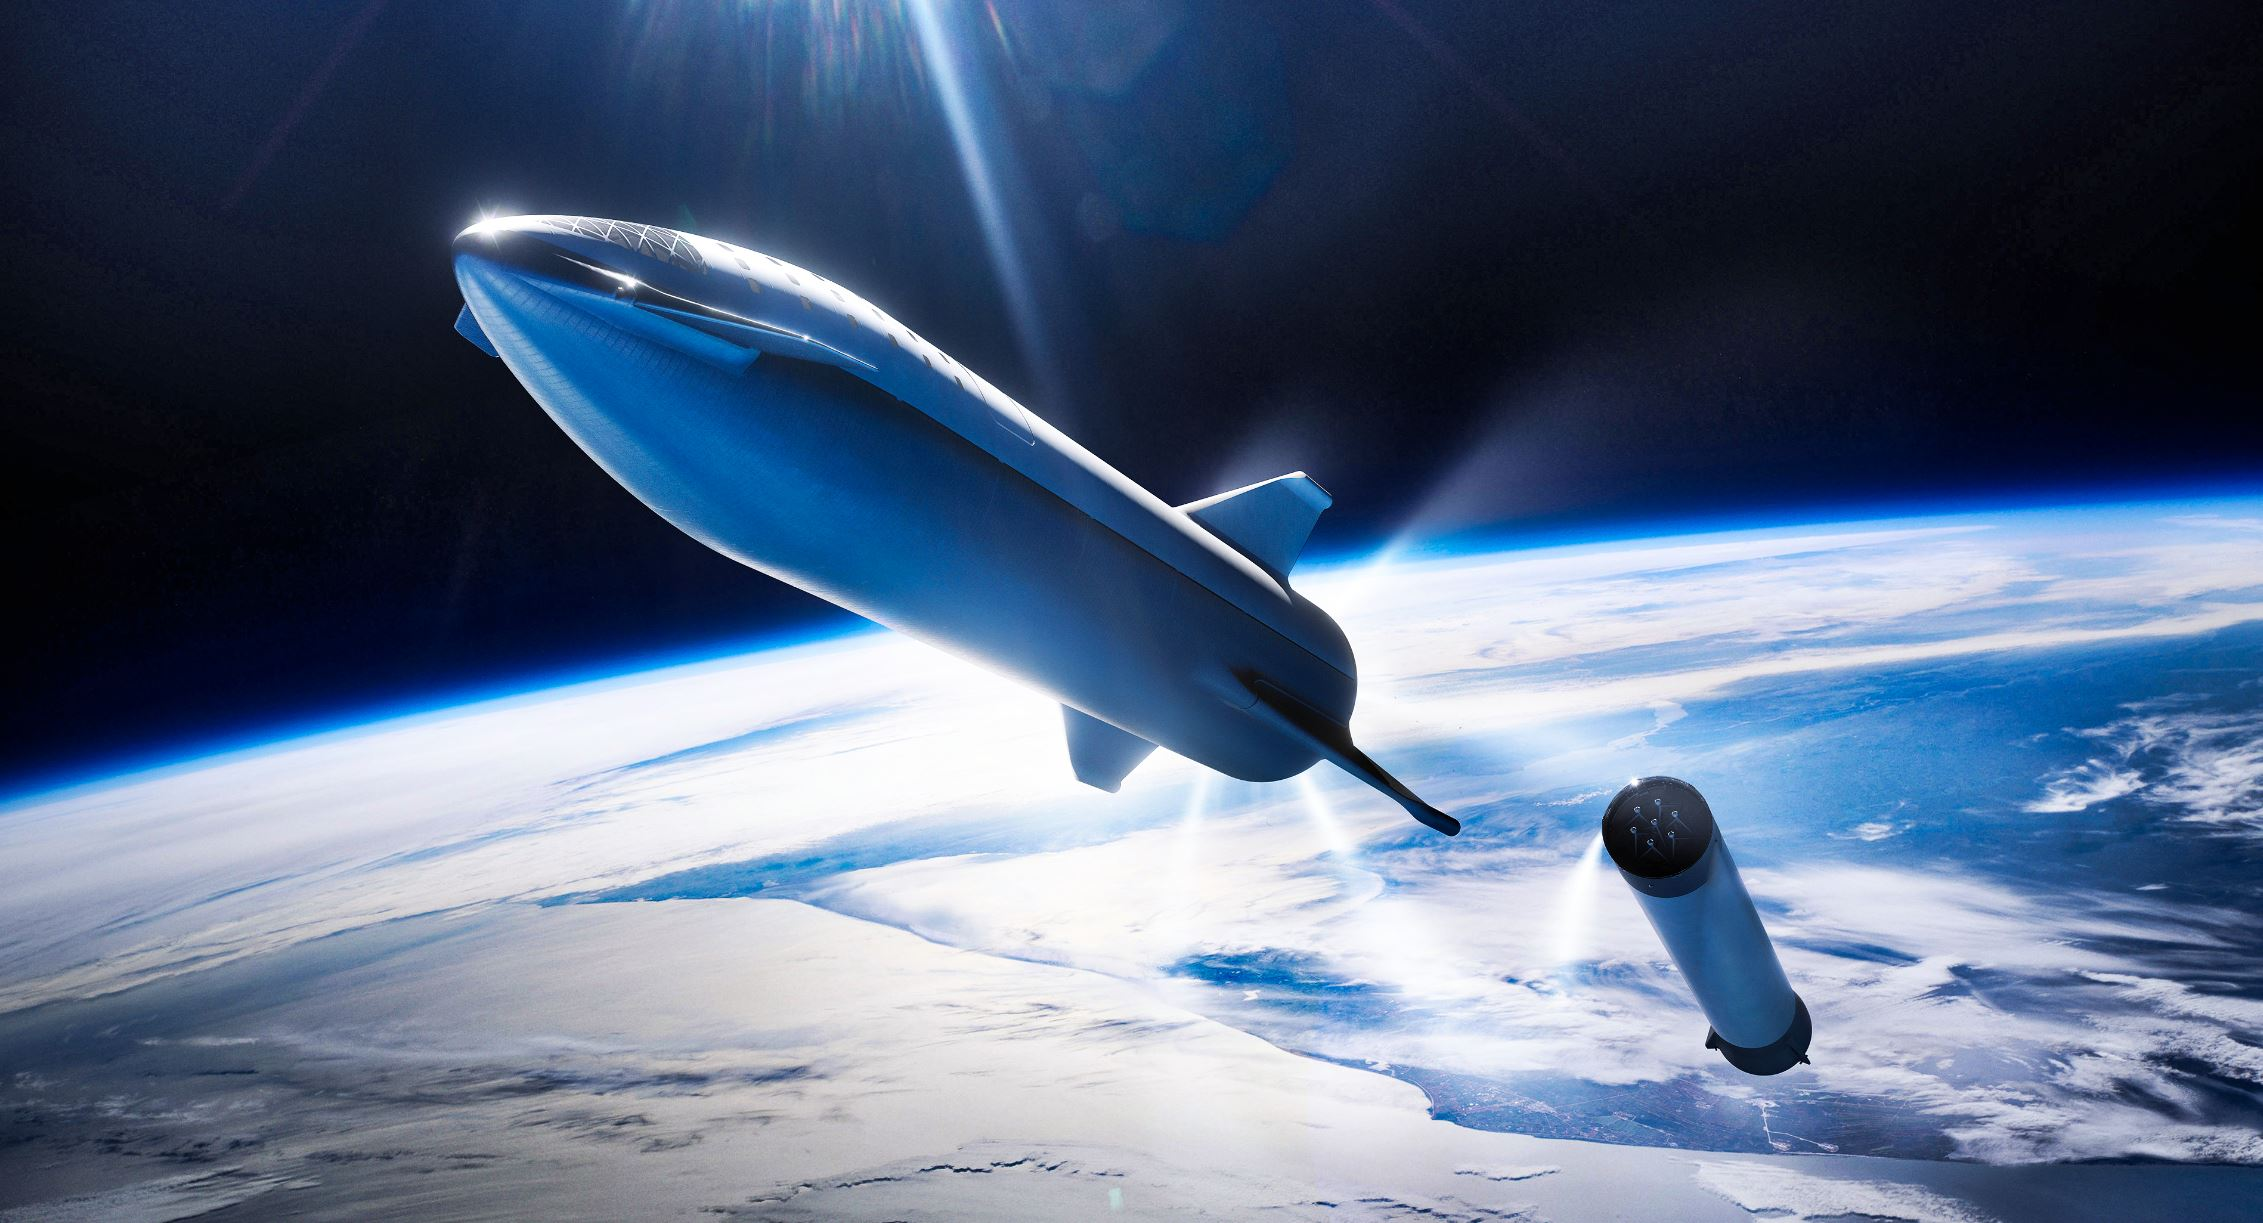 Artist's illustration of the SpaceX Starship. - Image Credits: SpaceX - HRD tuned by Universal-Sci